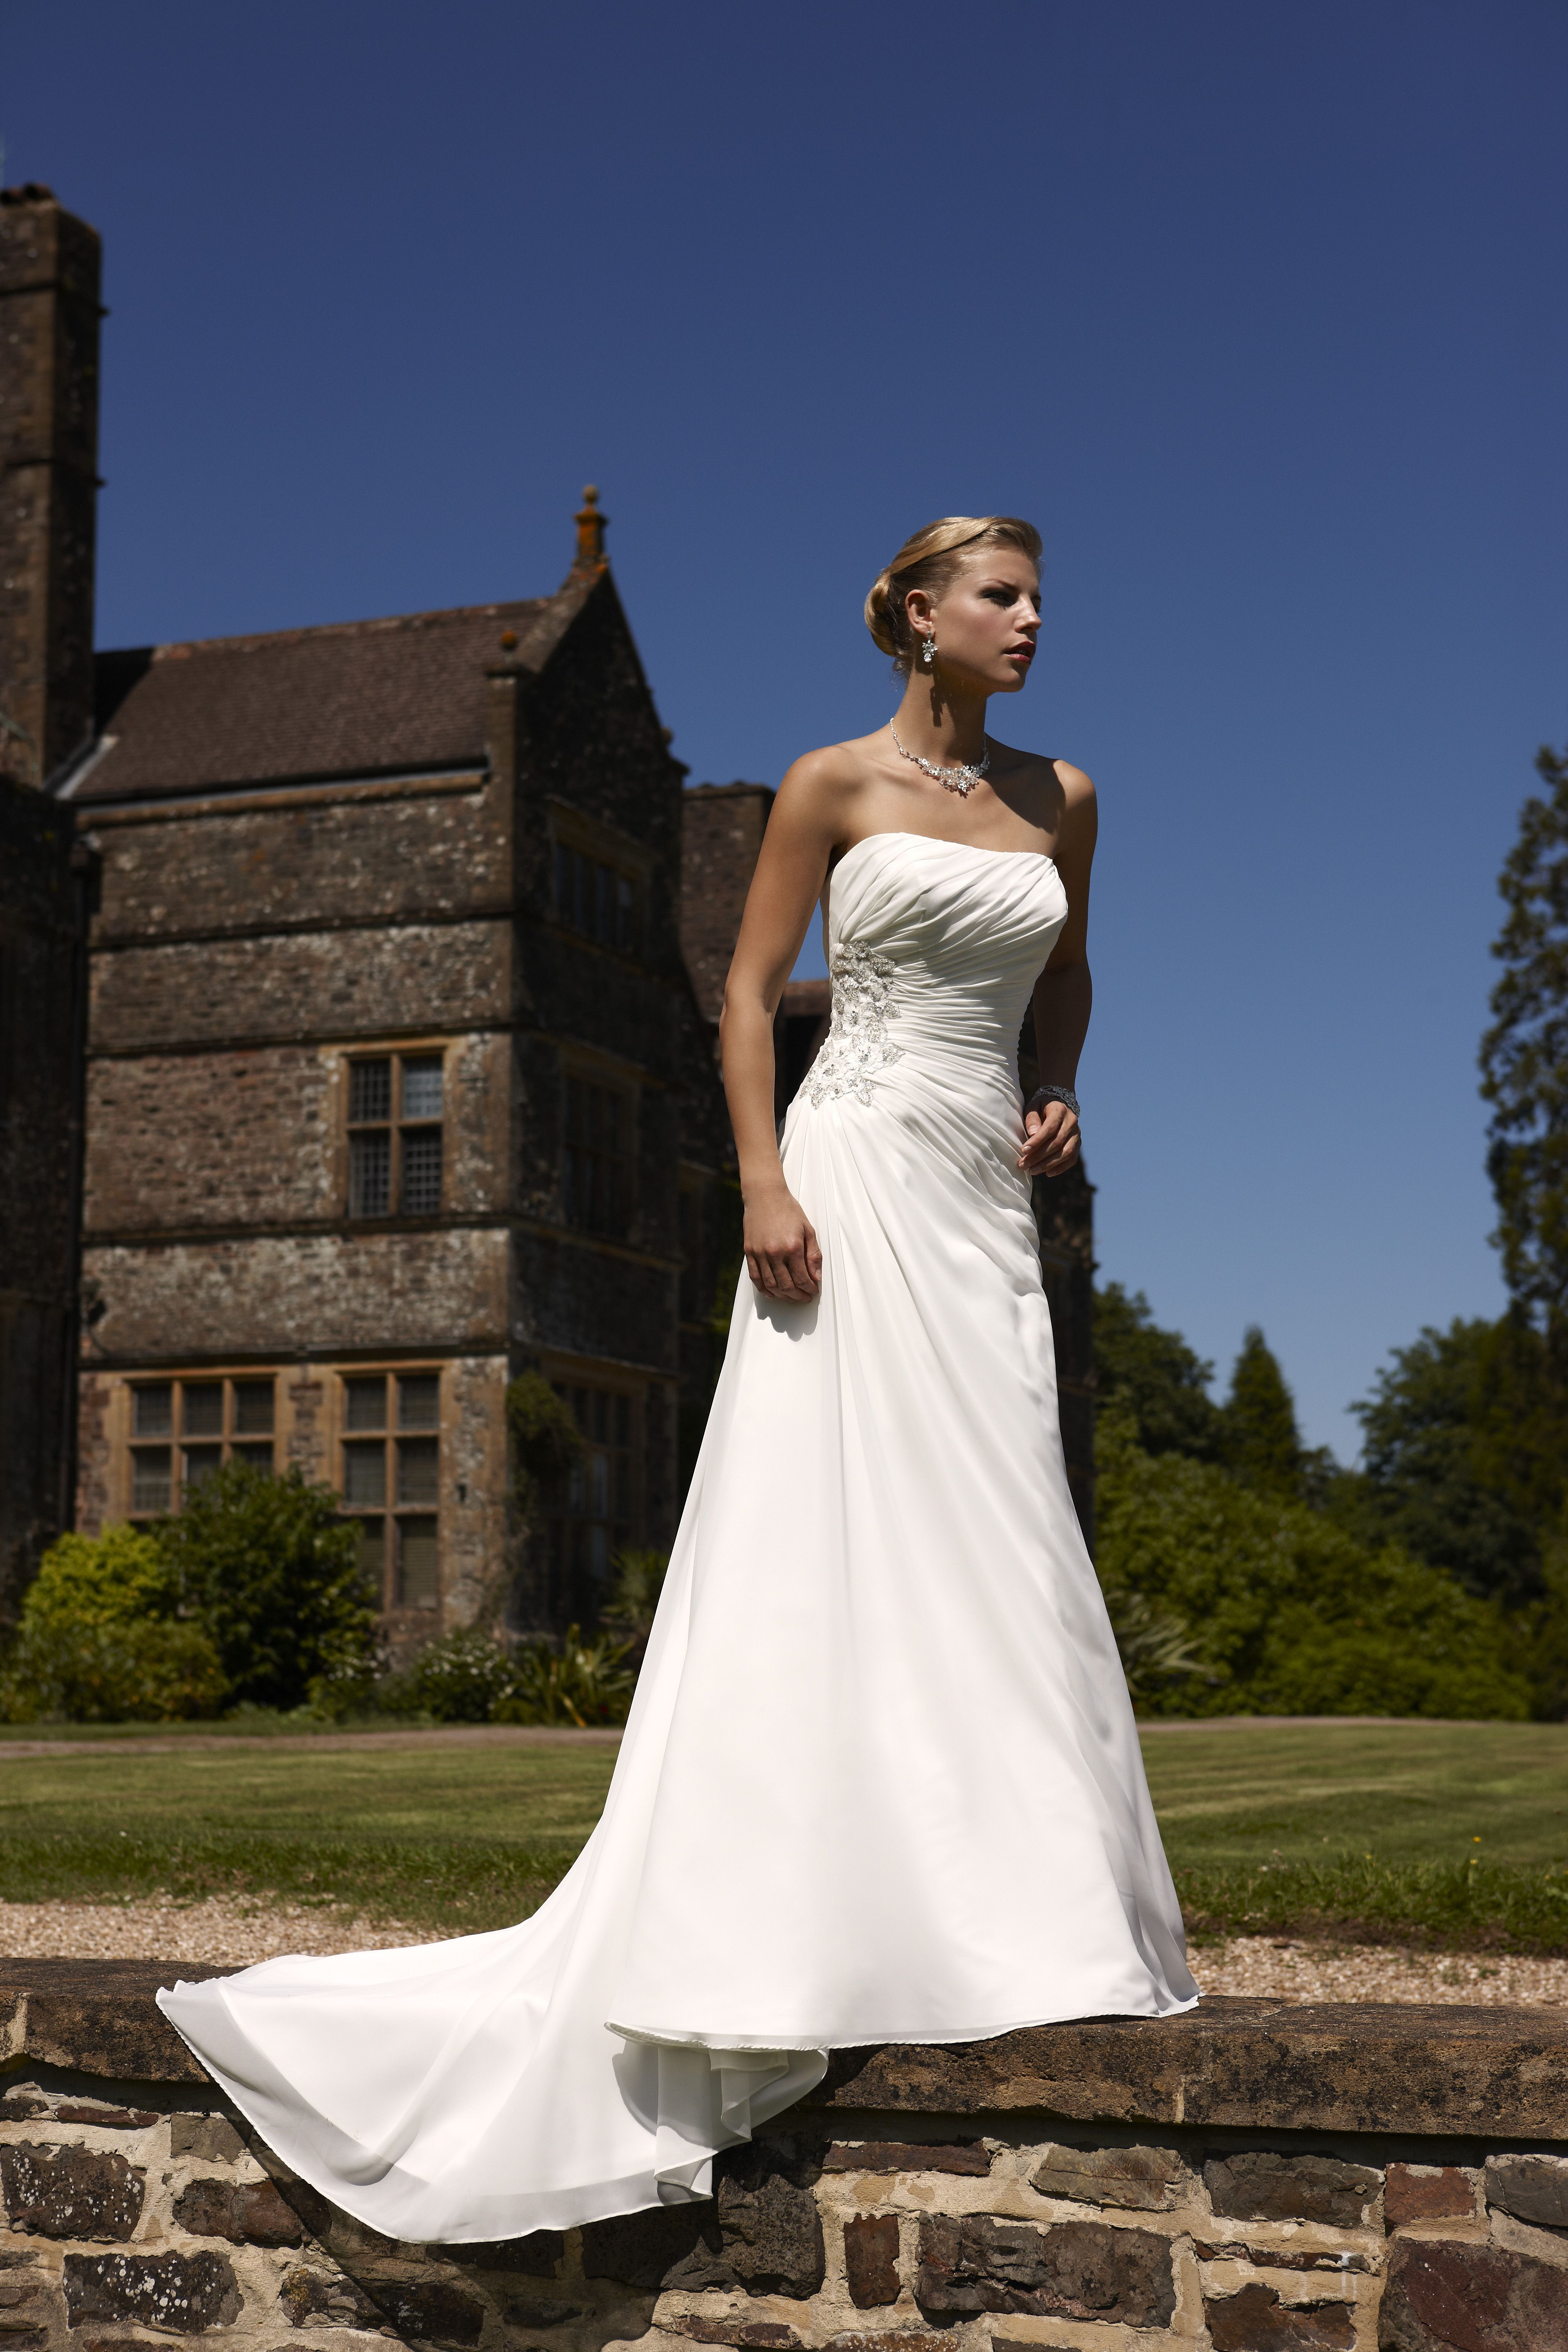 Janice By Romantica Of Devon Bridal As Featured On The Romantica Of